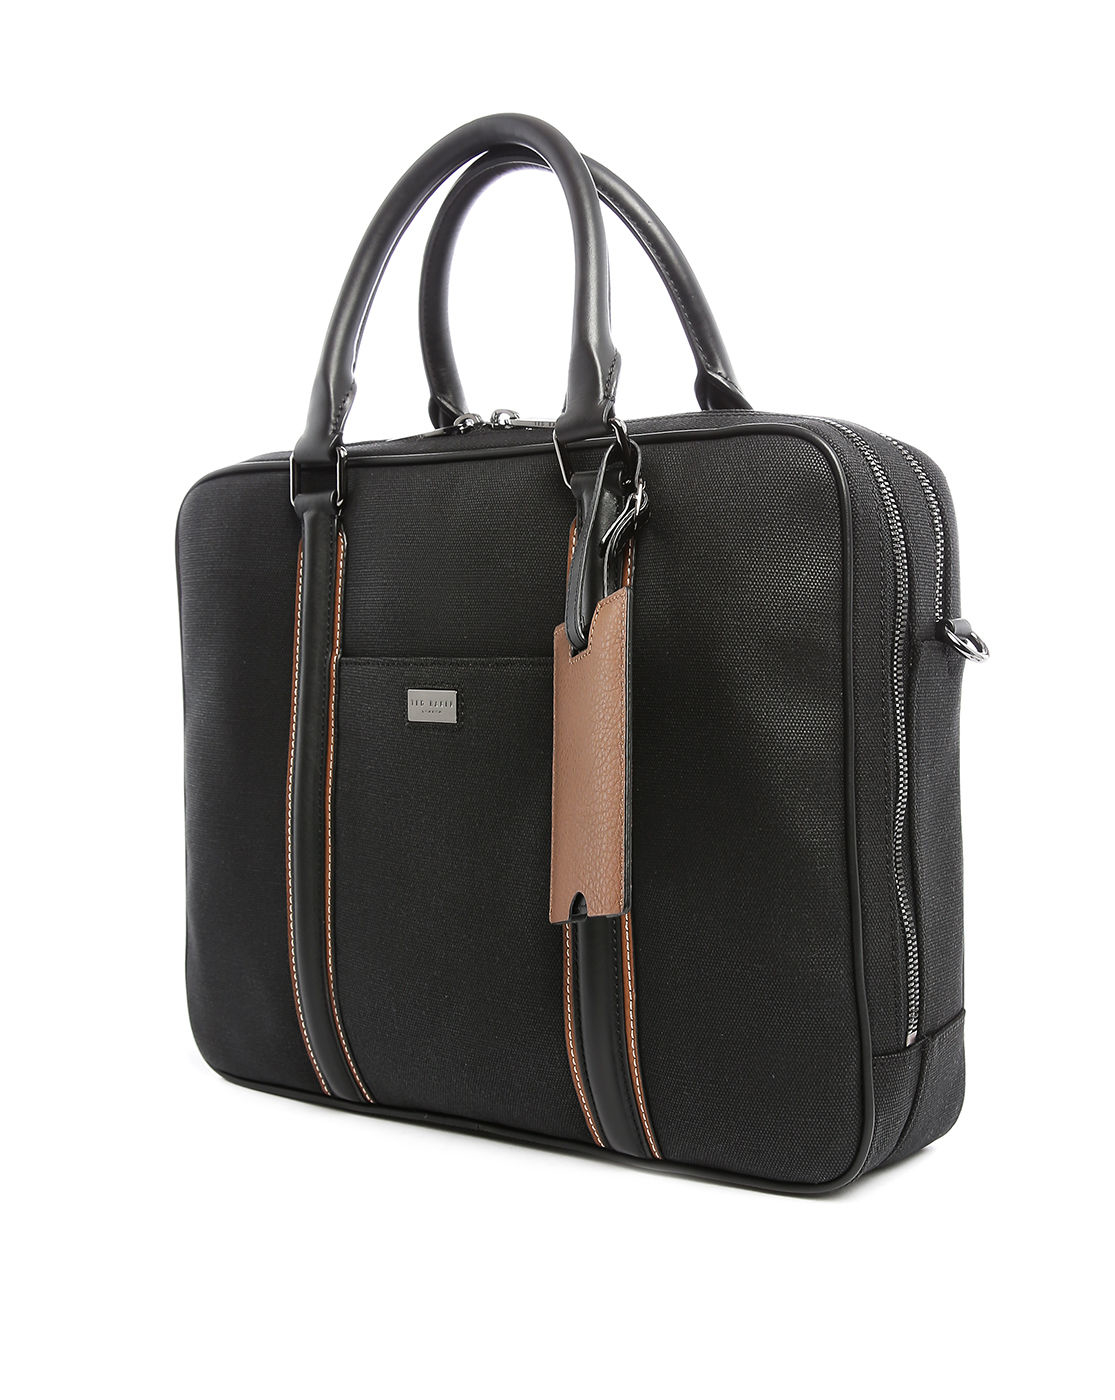 ted baker briefcase bag photo - 1